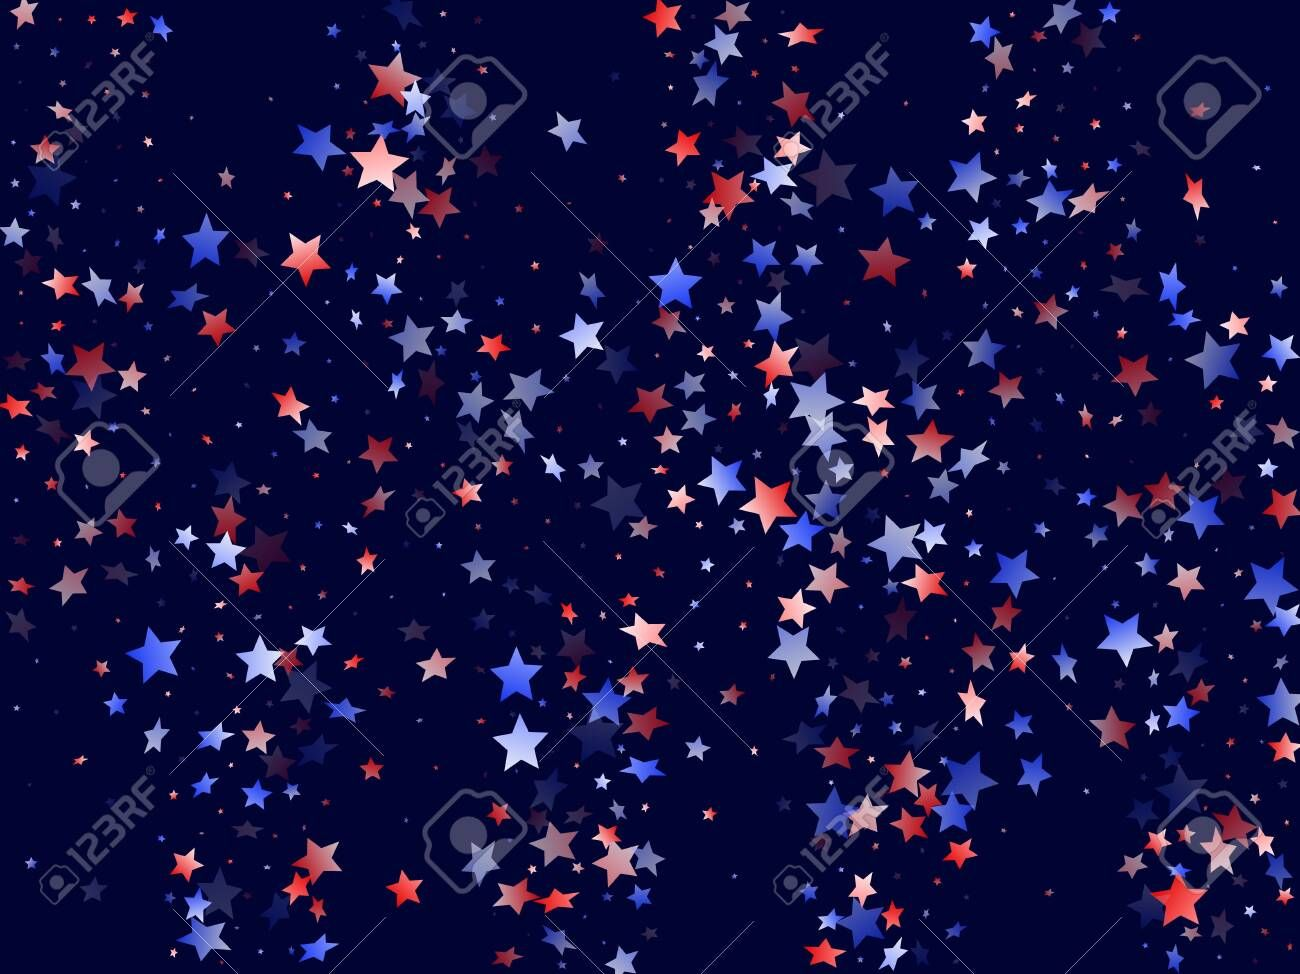 American Presidents Day Stars Background Confetti In Us Flag Colors For Independence Day Navy Red Blue White In 2020 Star Background Flag Colors American Presidents